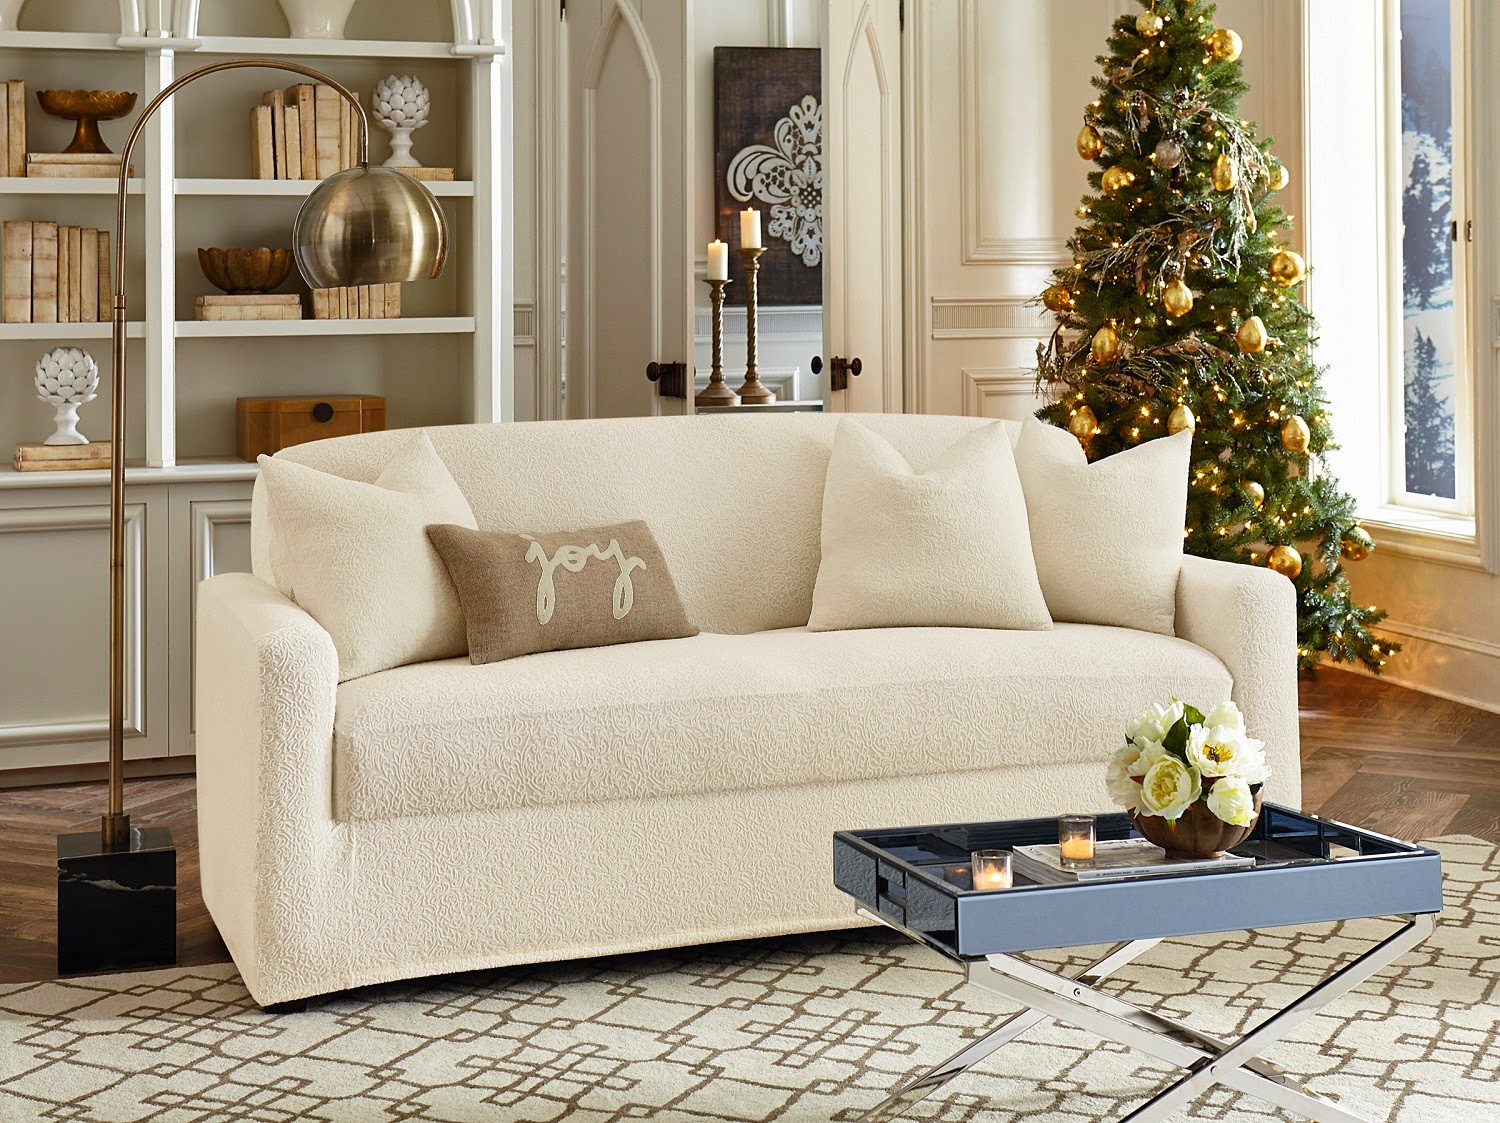 Http://www.surefit.net/shop/categories/sofa